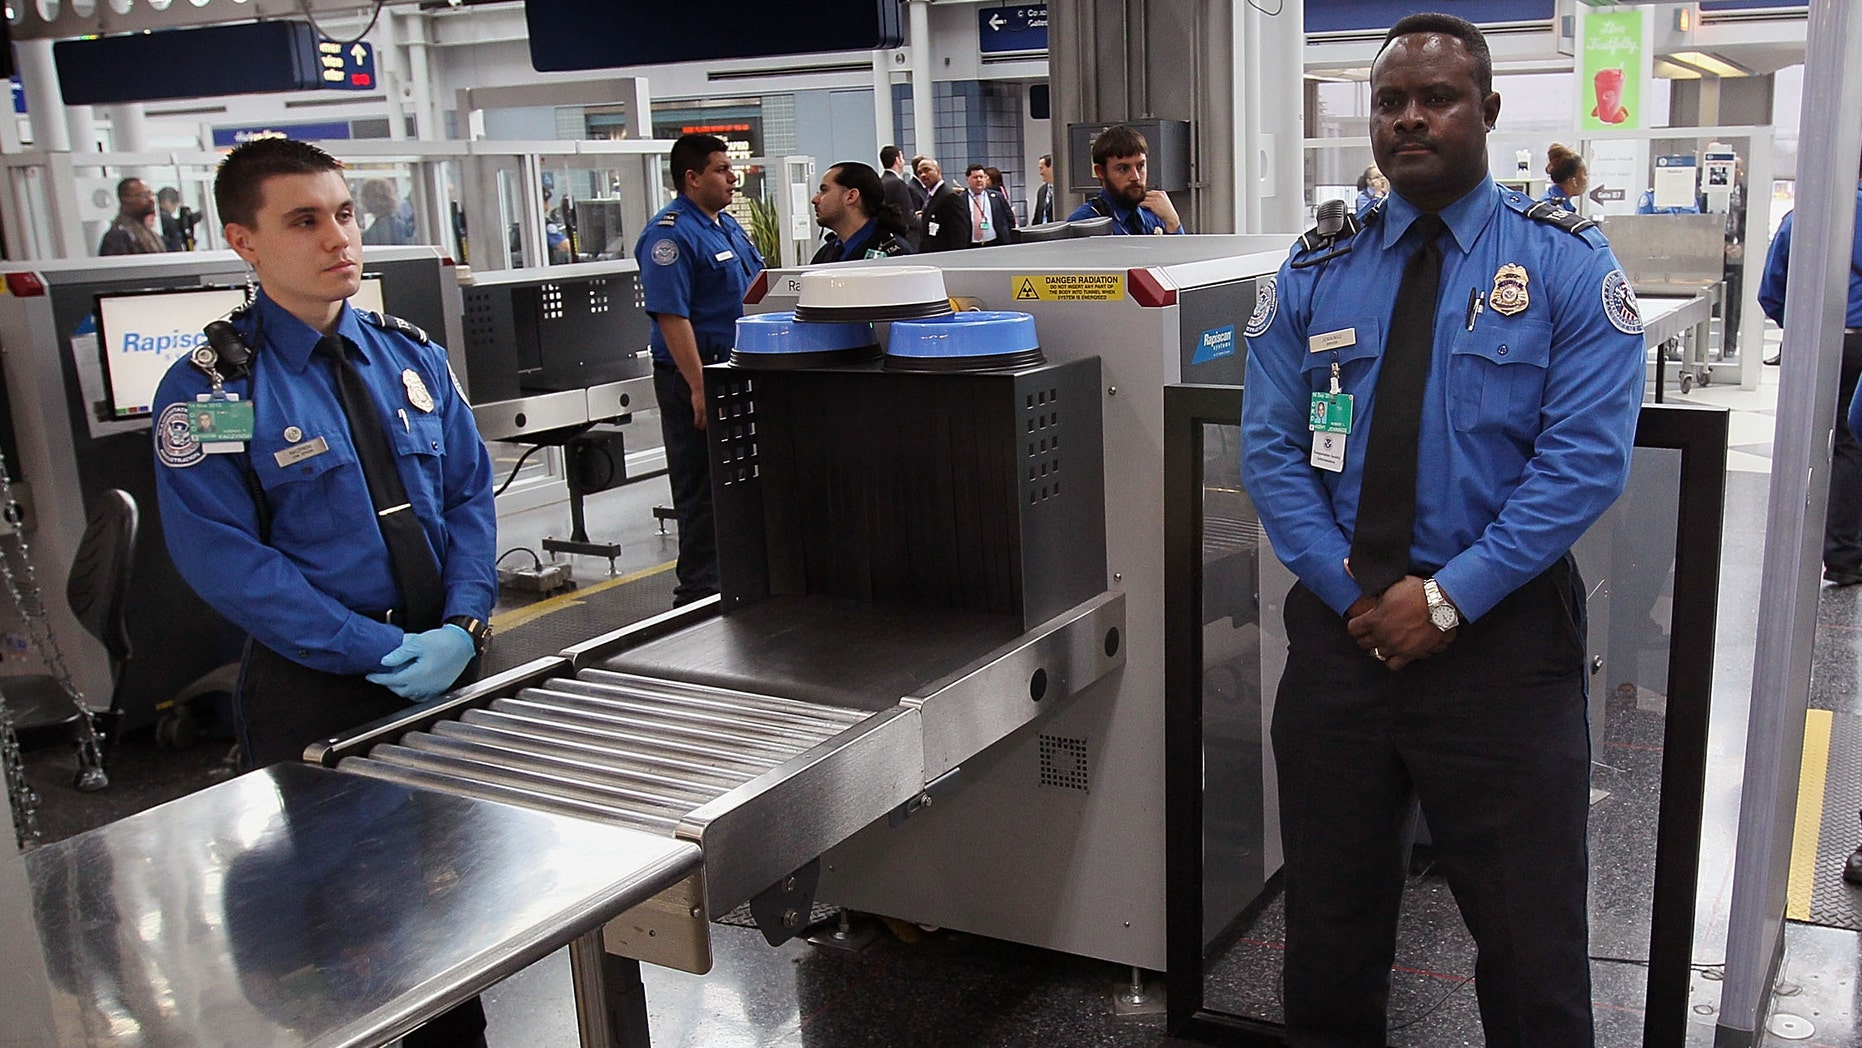 Transportation Security Administration (TSA) officers staff a checkpoint at O'Hare International Airport